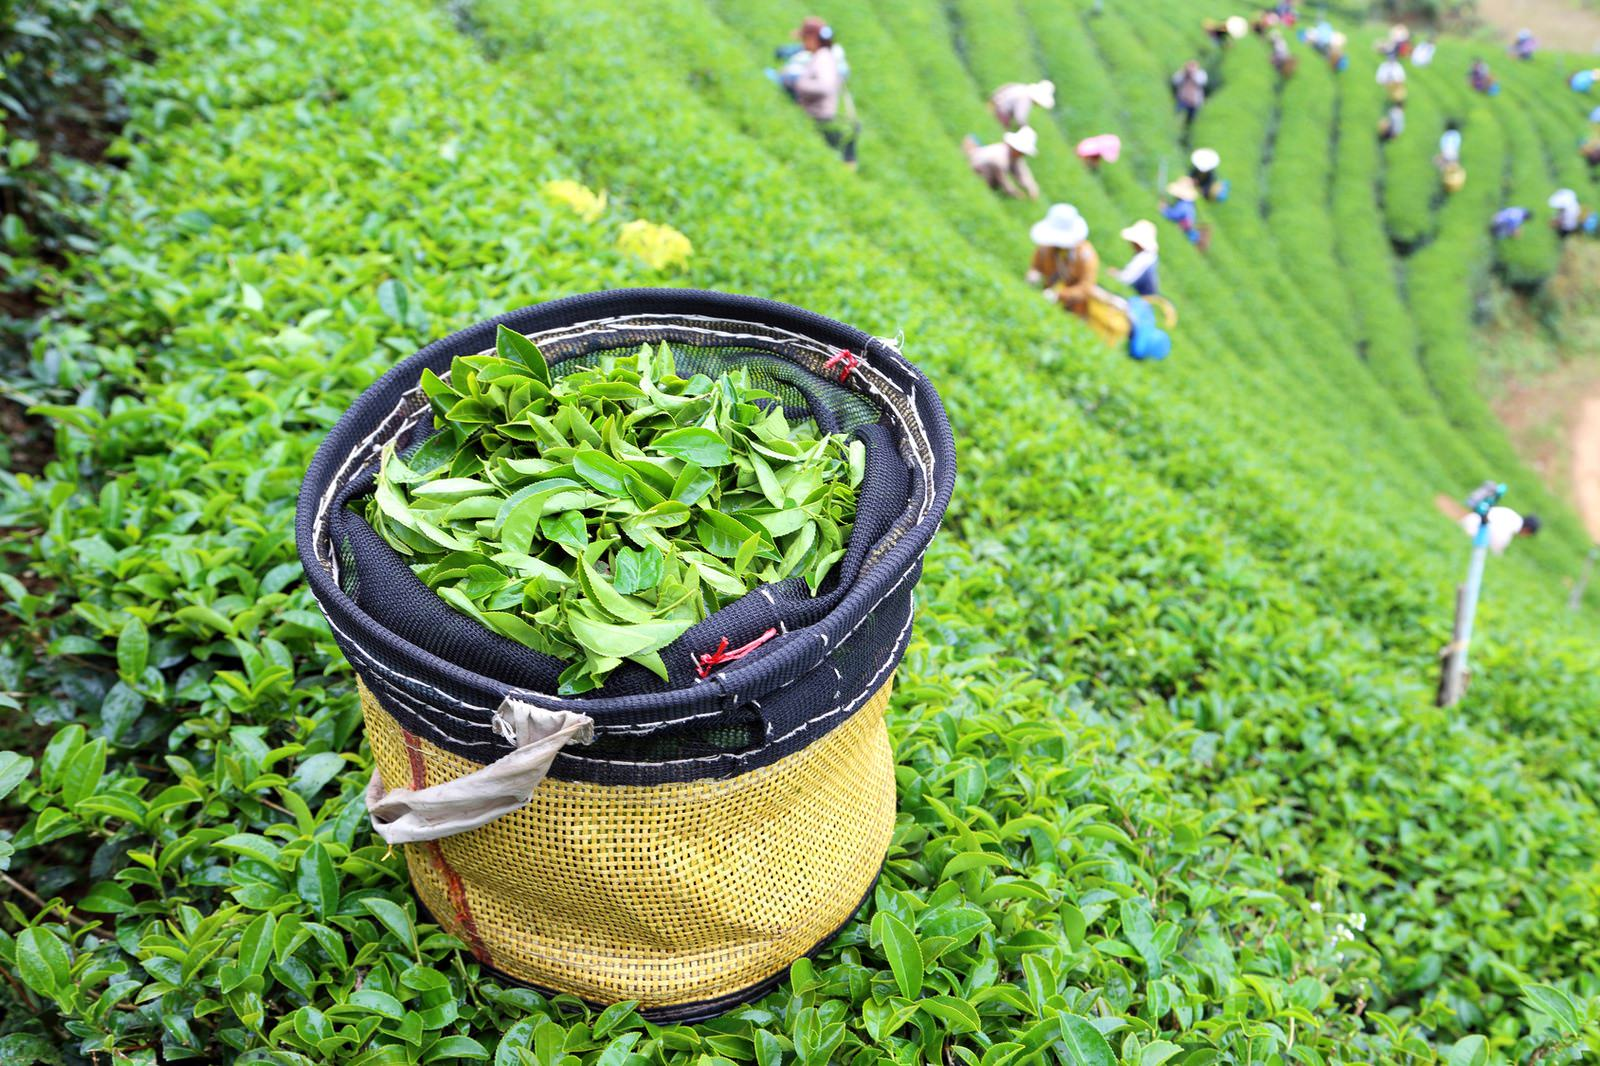 green tea plantation landscape in India